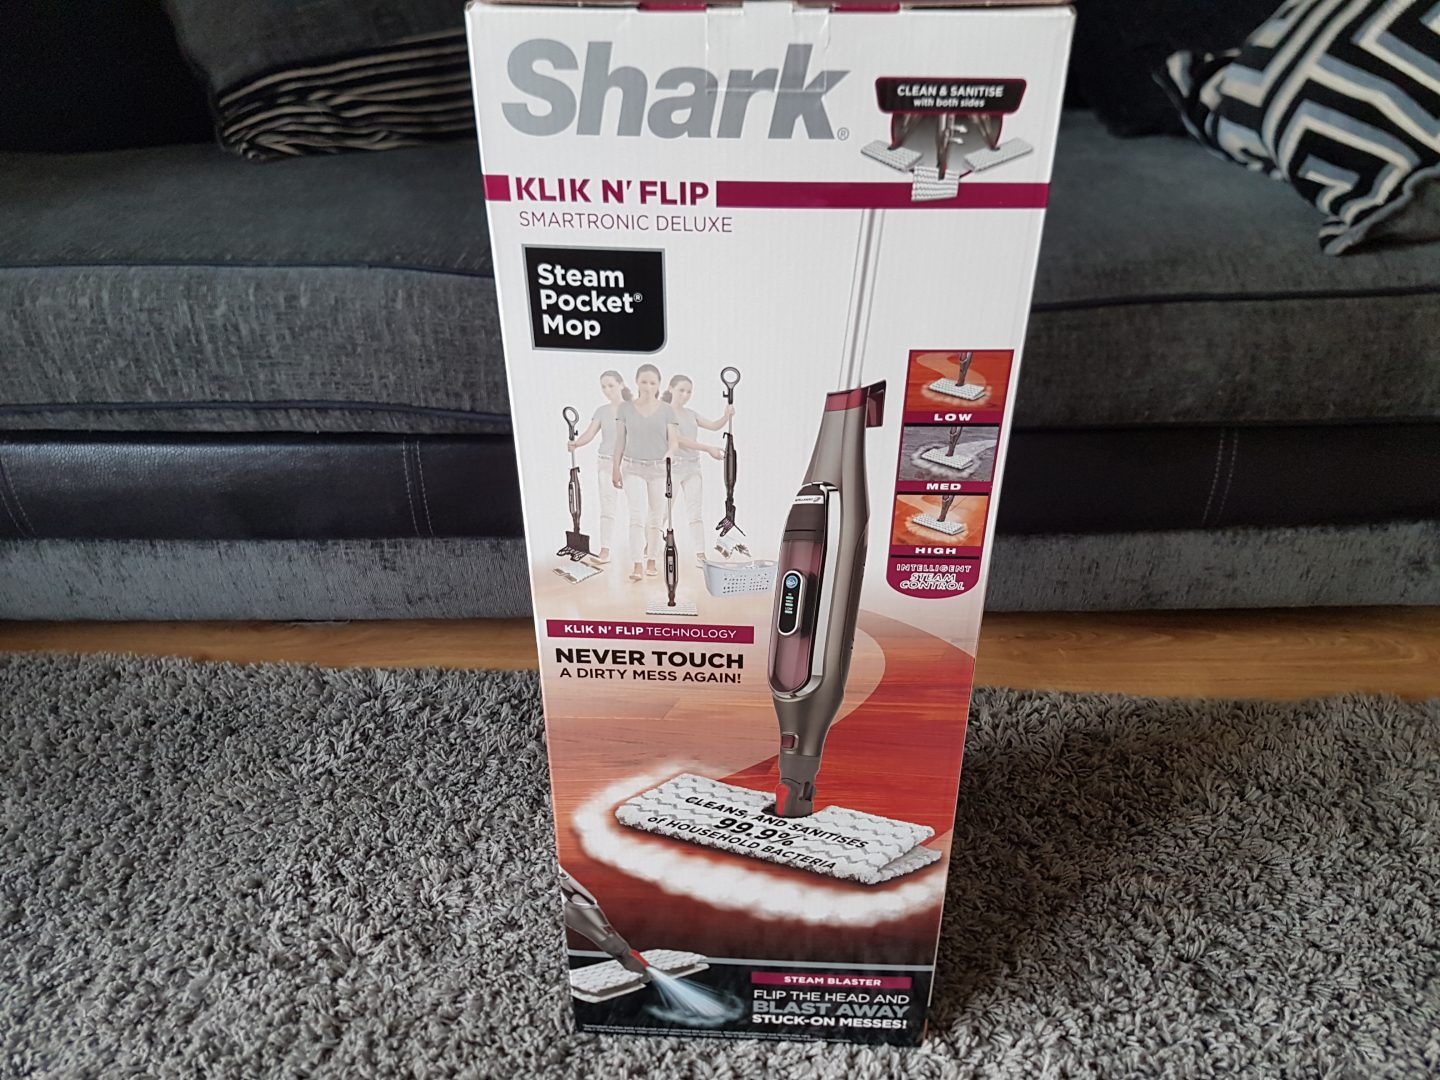 Shark Klik n' Flip Automatic Steam Pocket Mop S6003UK-My review